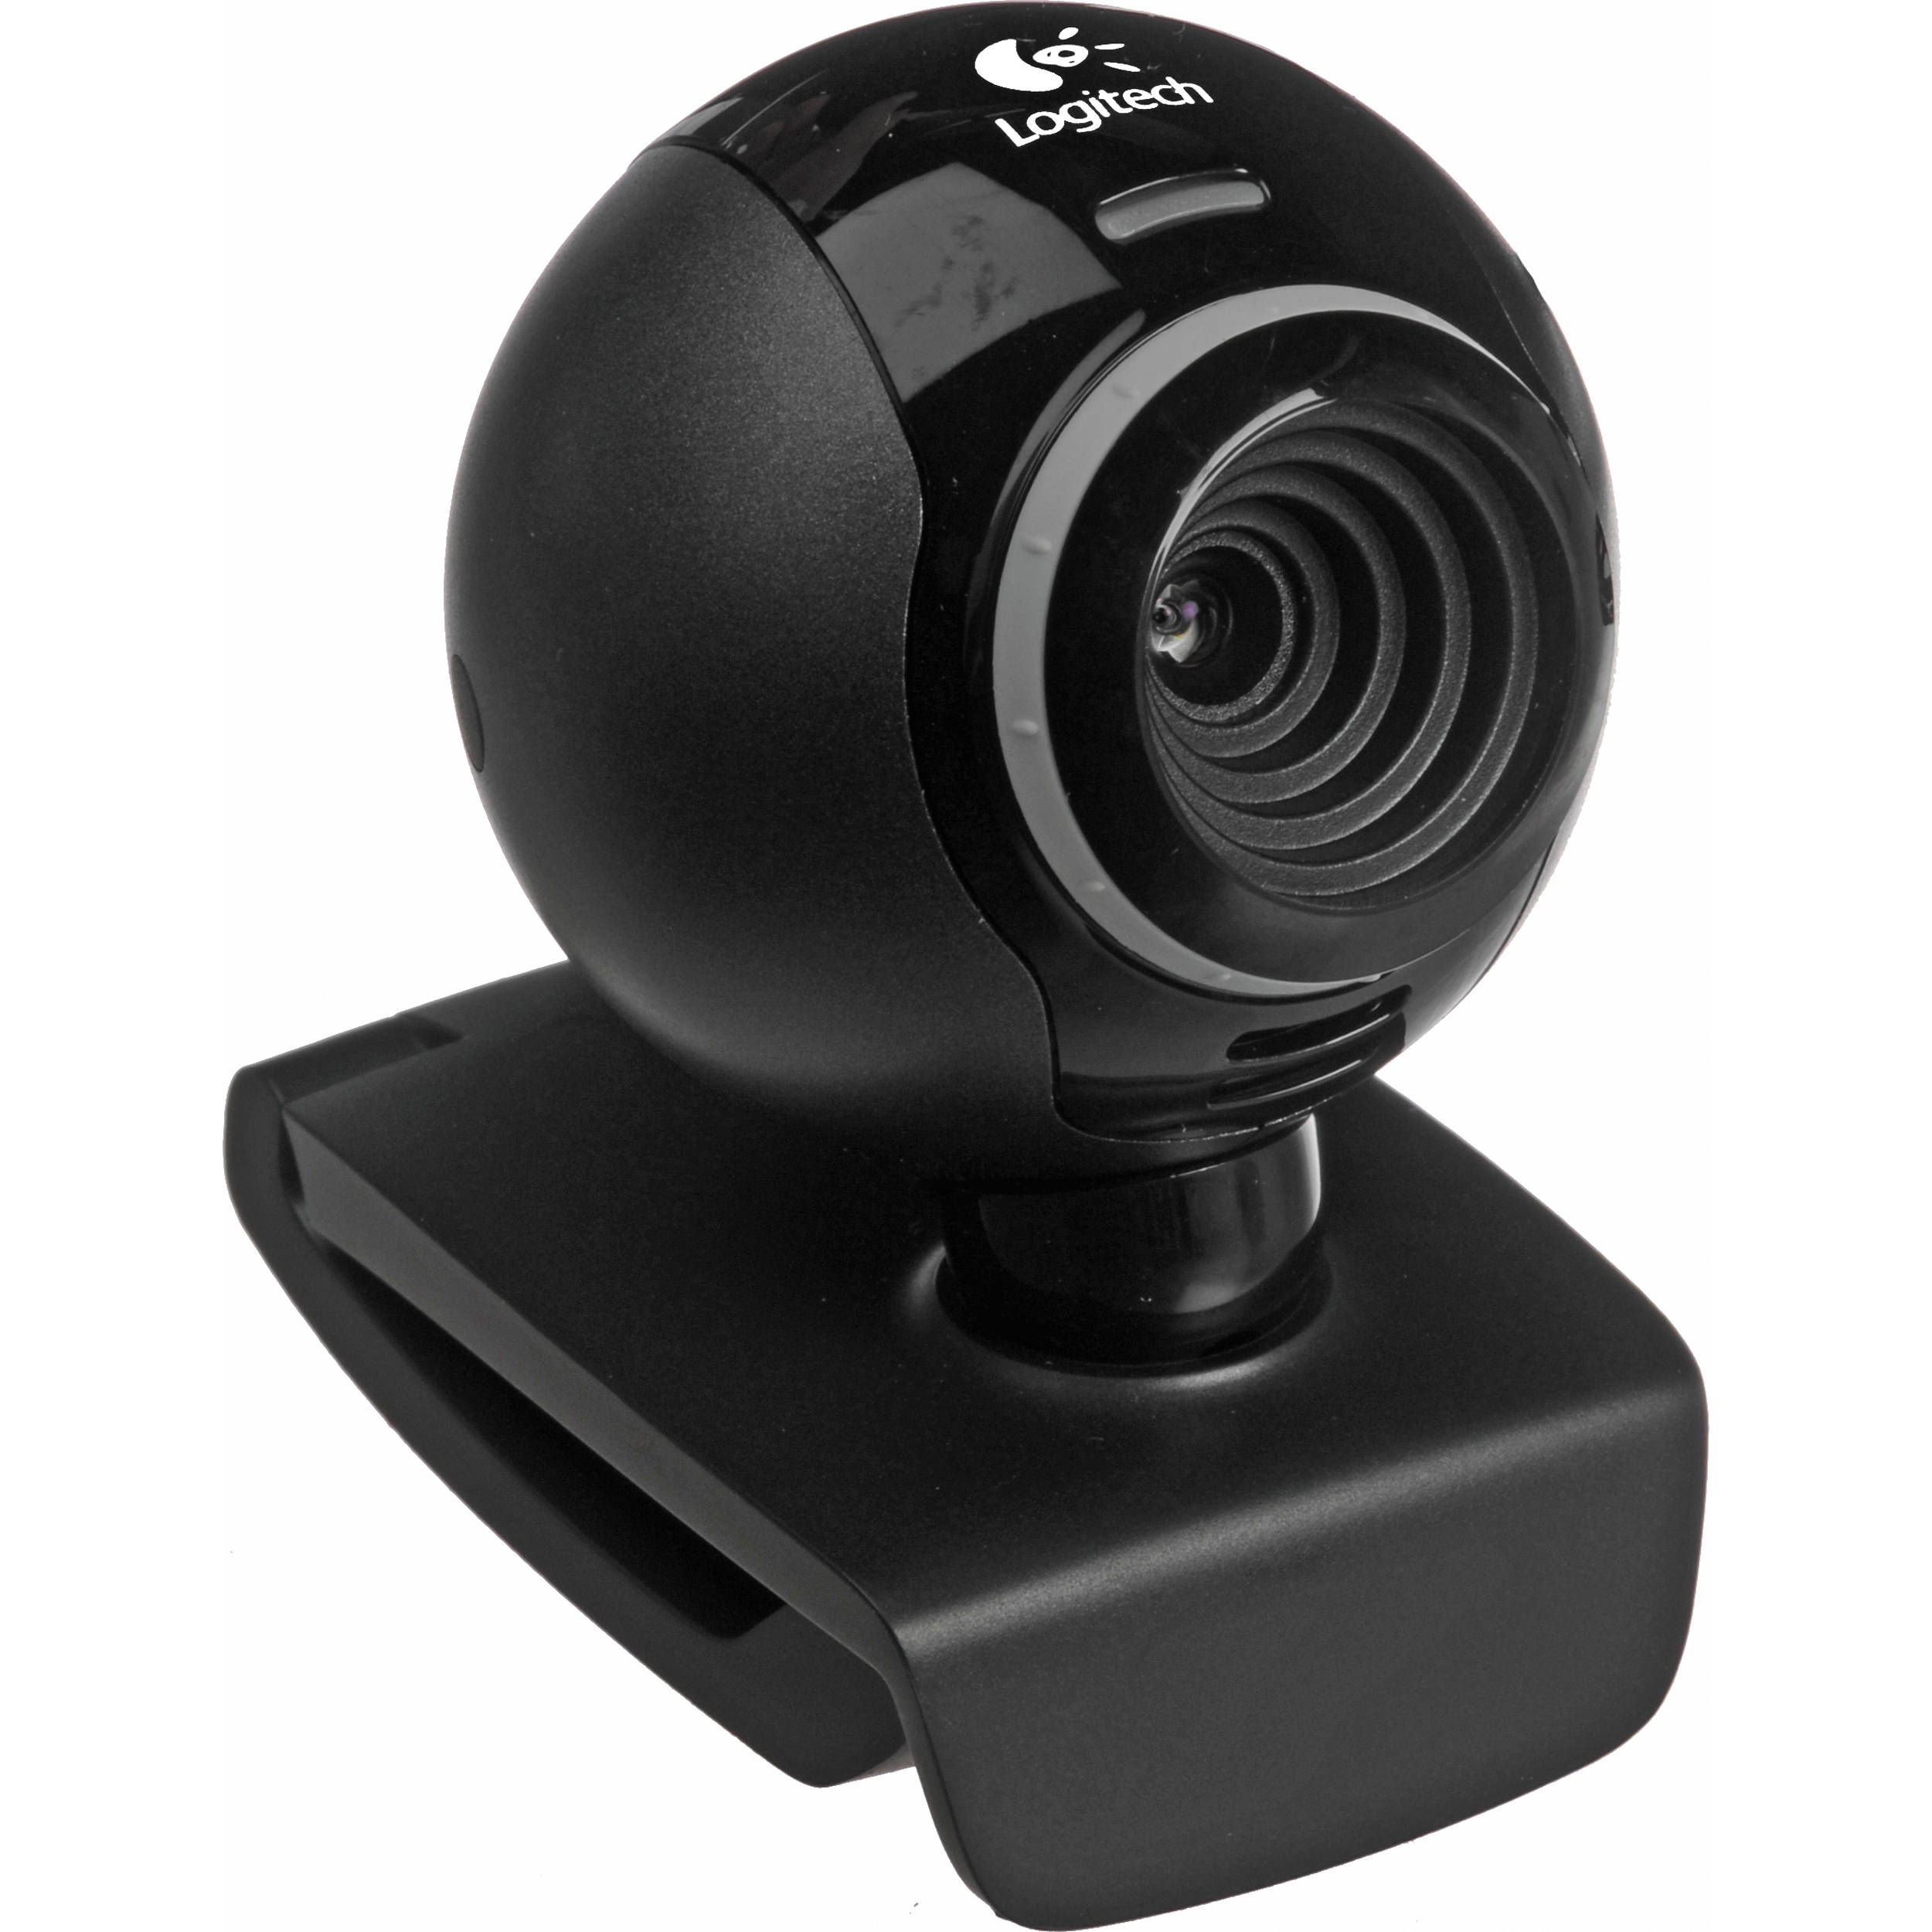 LOGITECH QUICKCAM WEBCAM DRIVER FOR WINDOWS 10